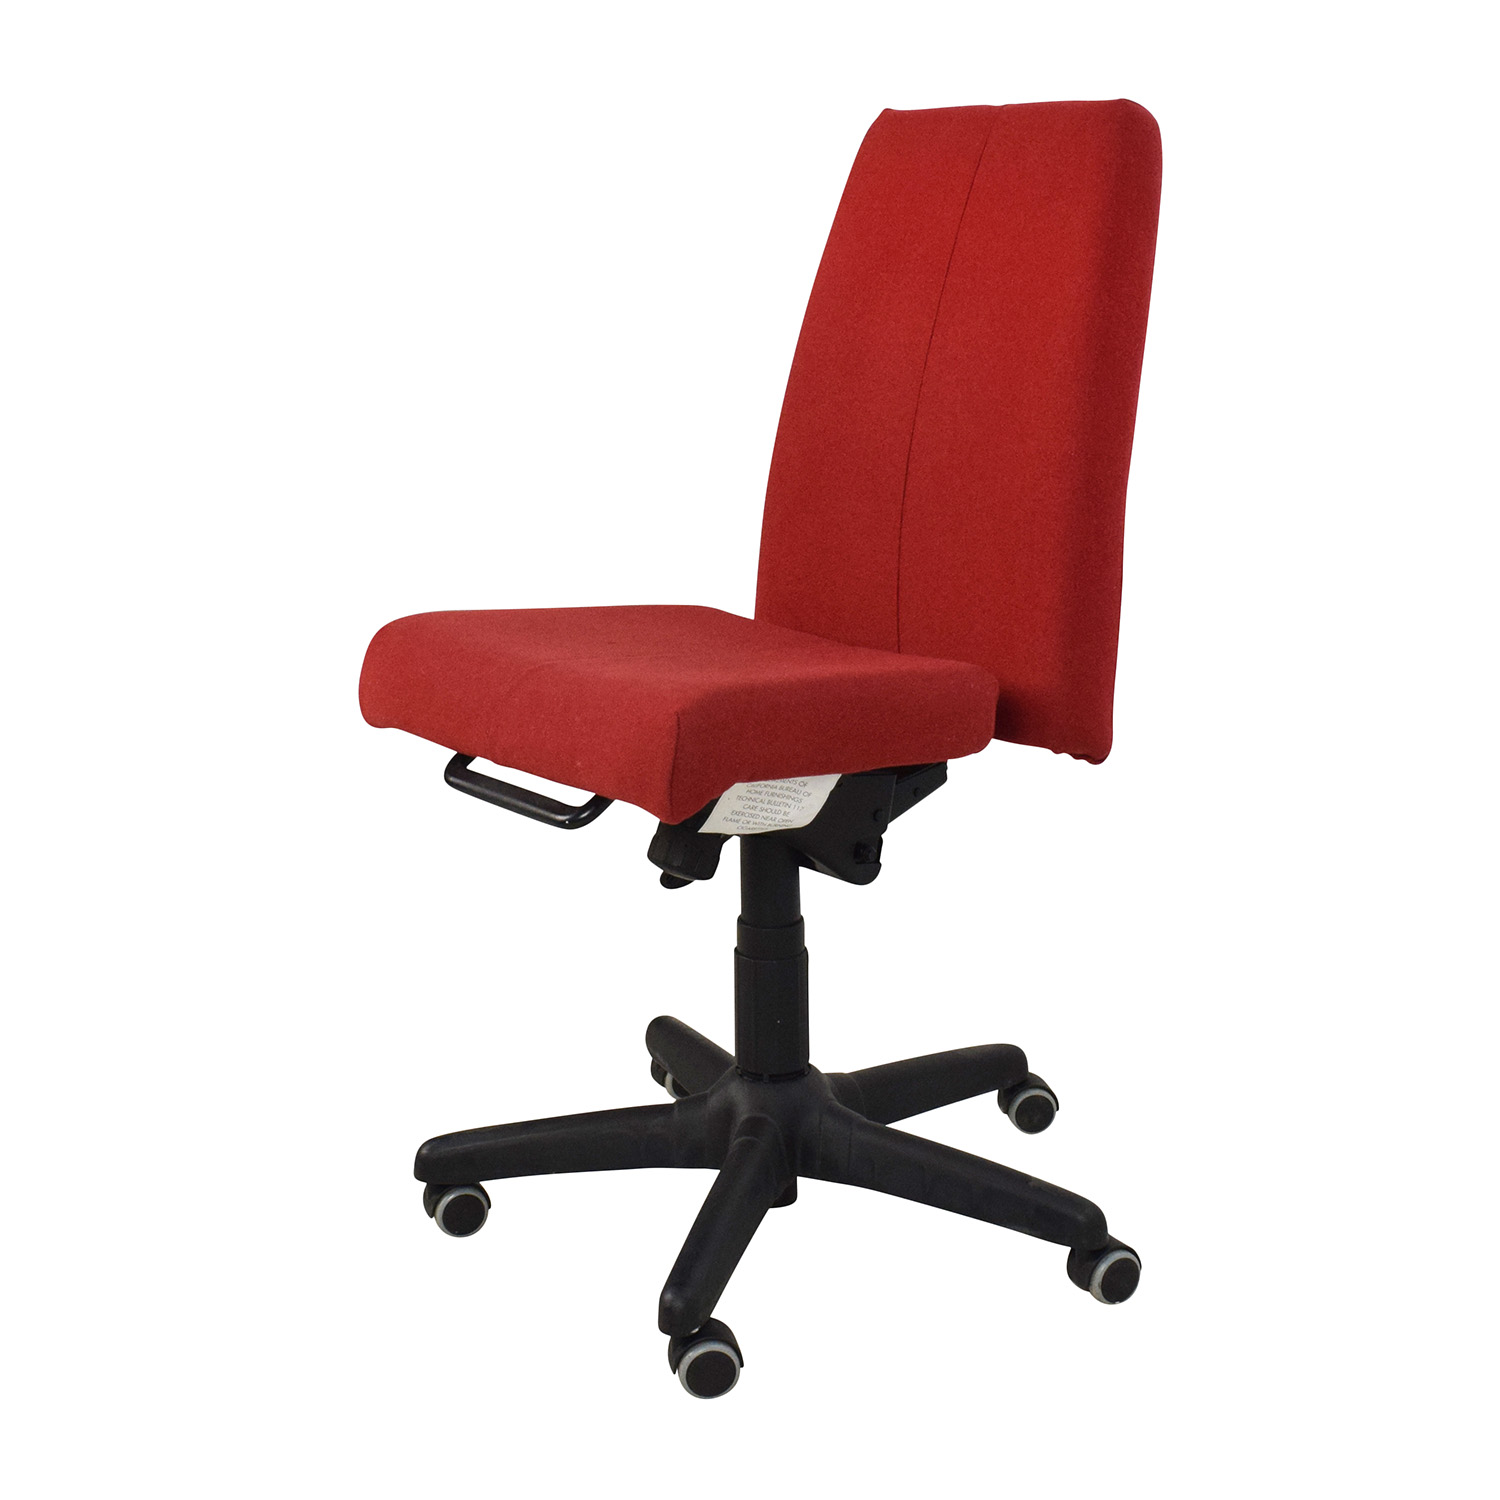 home office chair eames lounge ottoman 90 off red armless adjustable chairs